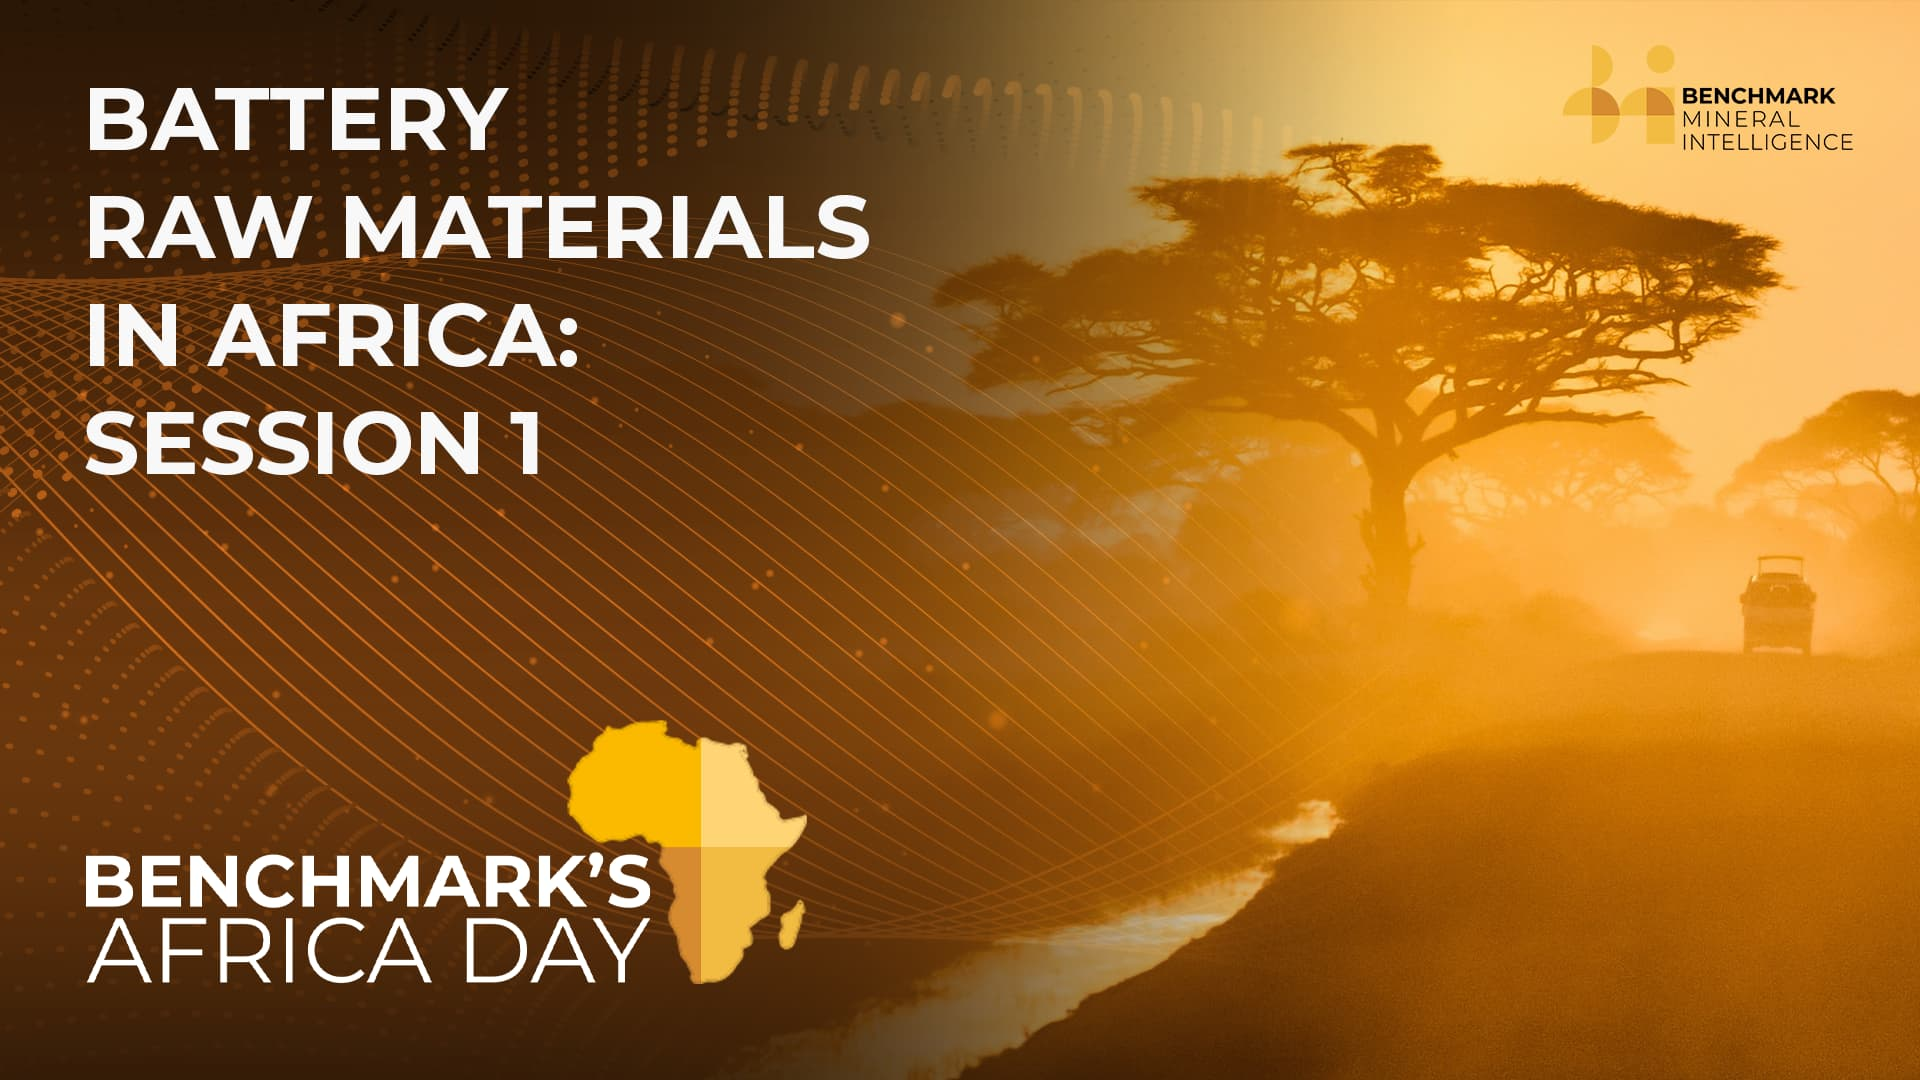 Battery Raw Materials in Africa: Session 1